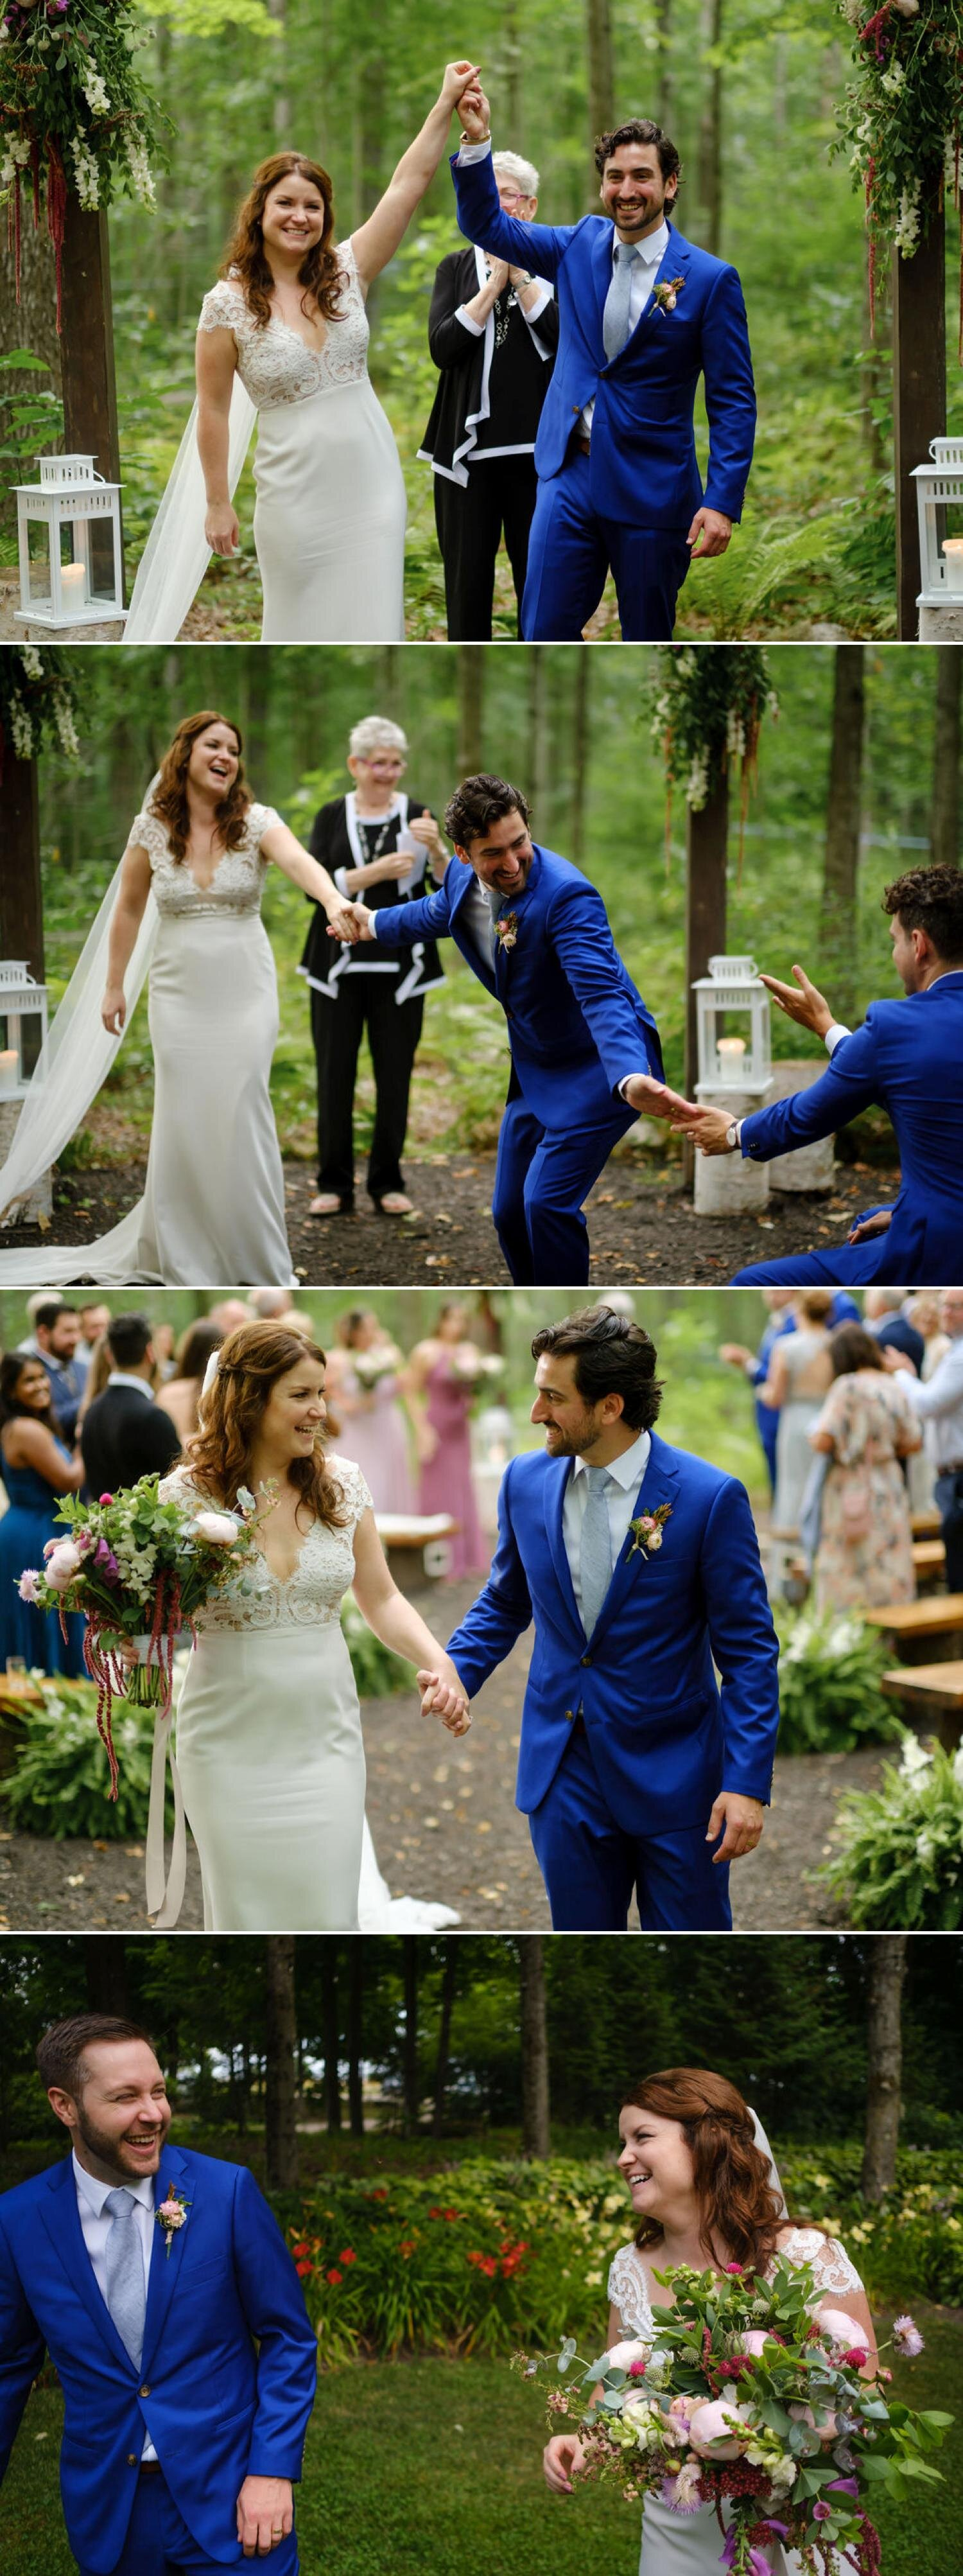 wedding photographs from temples sugarbush